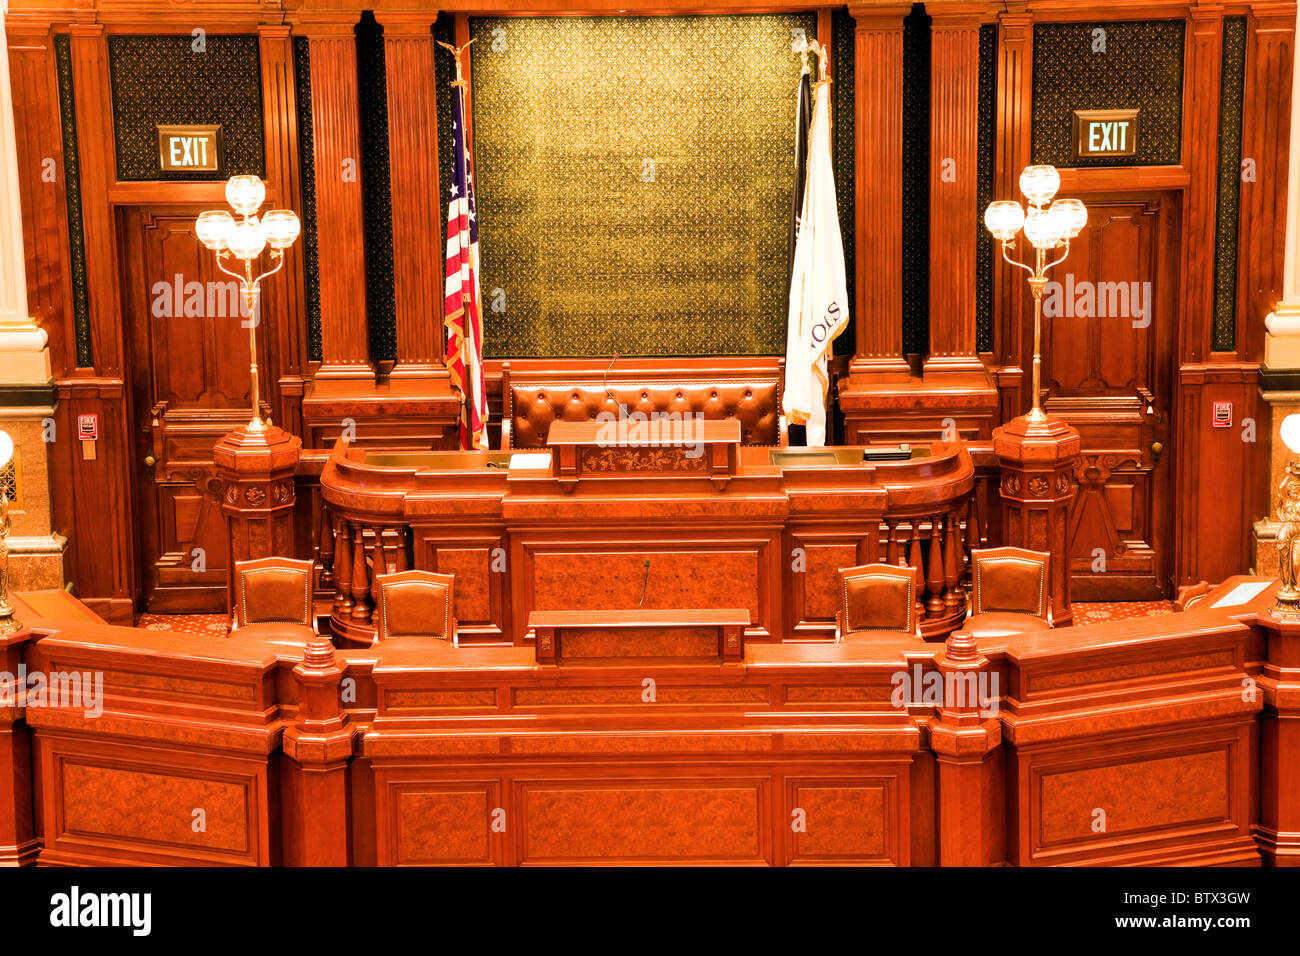 Springfield, Illinois - inside State Capitol Building - Stock Image